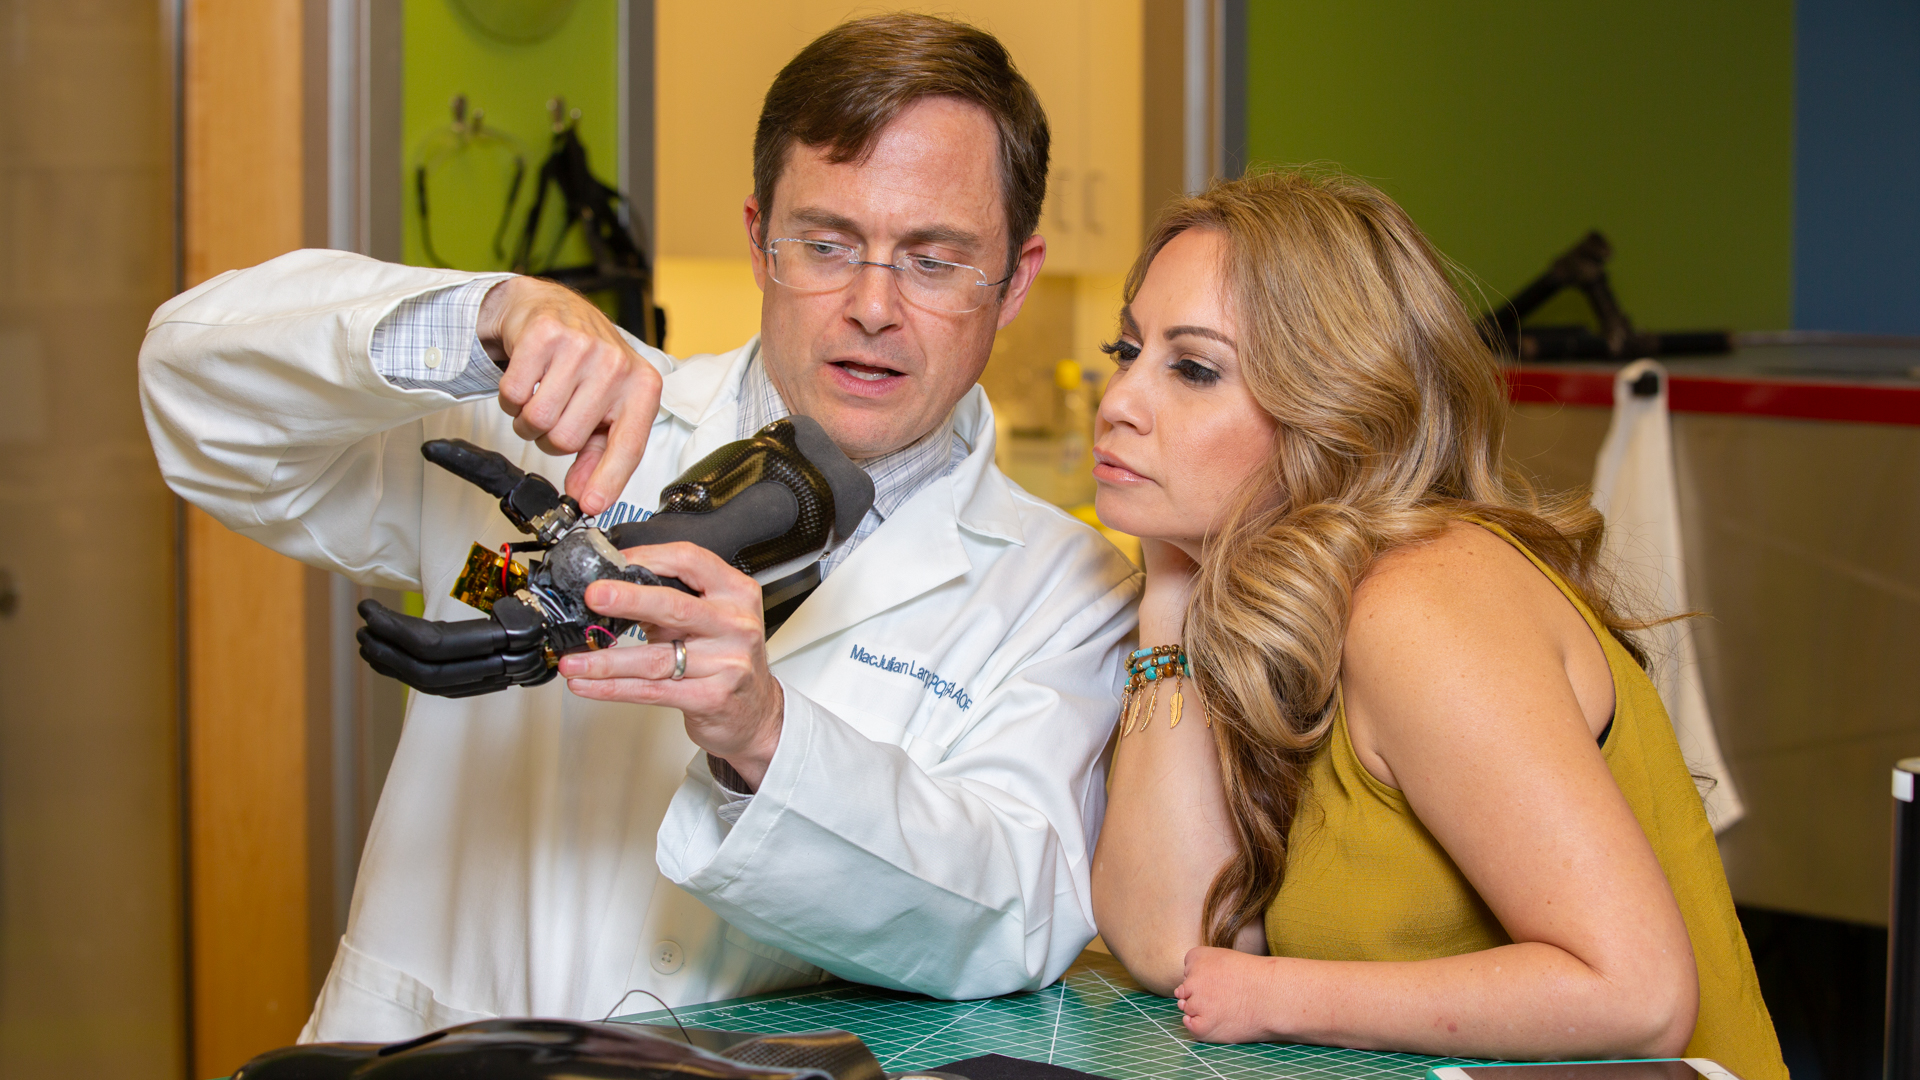 Prosthetist working with patient on electrically-powered partial hand prosthesis